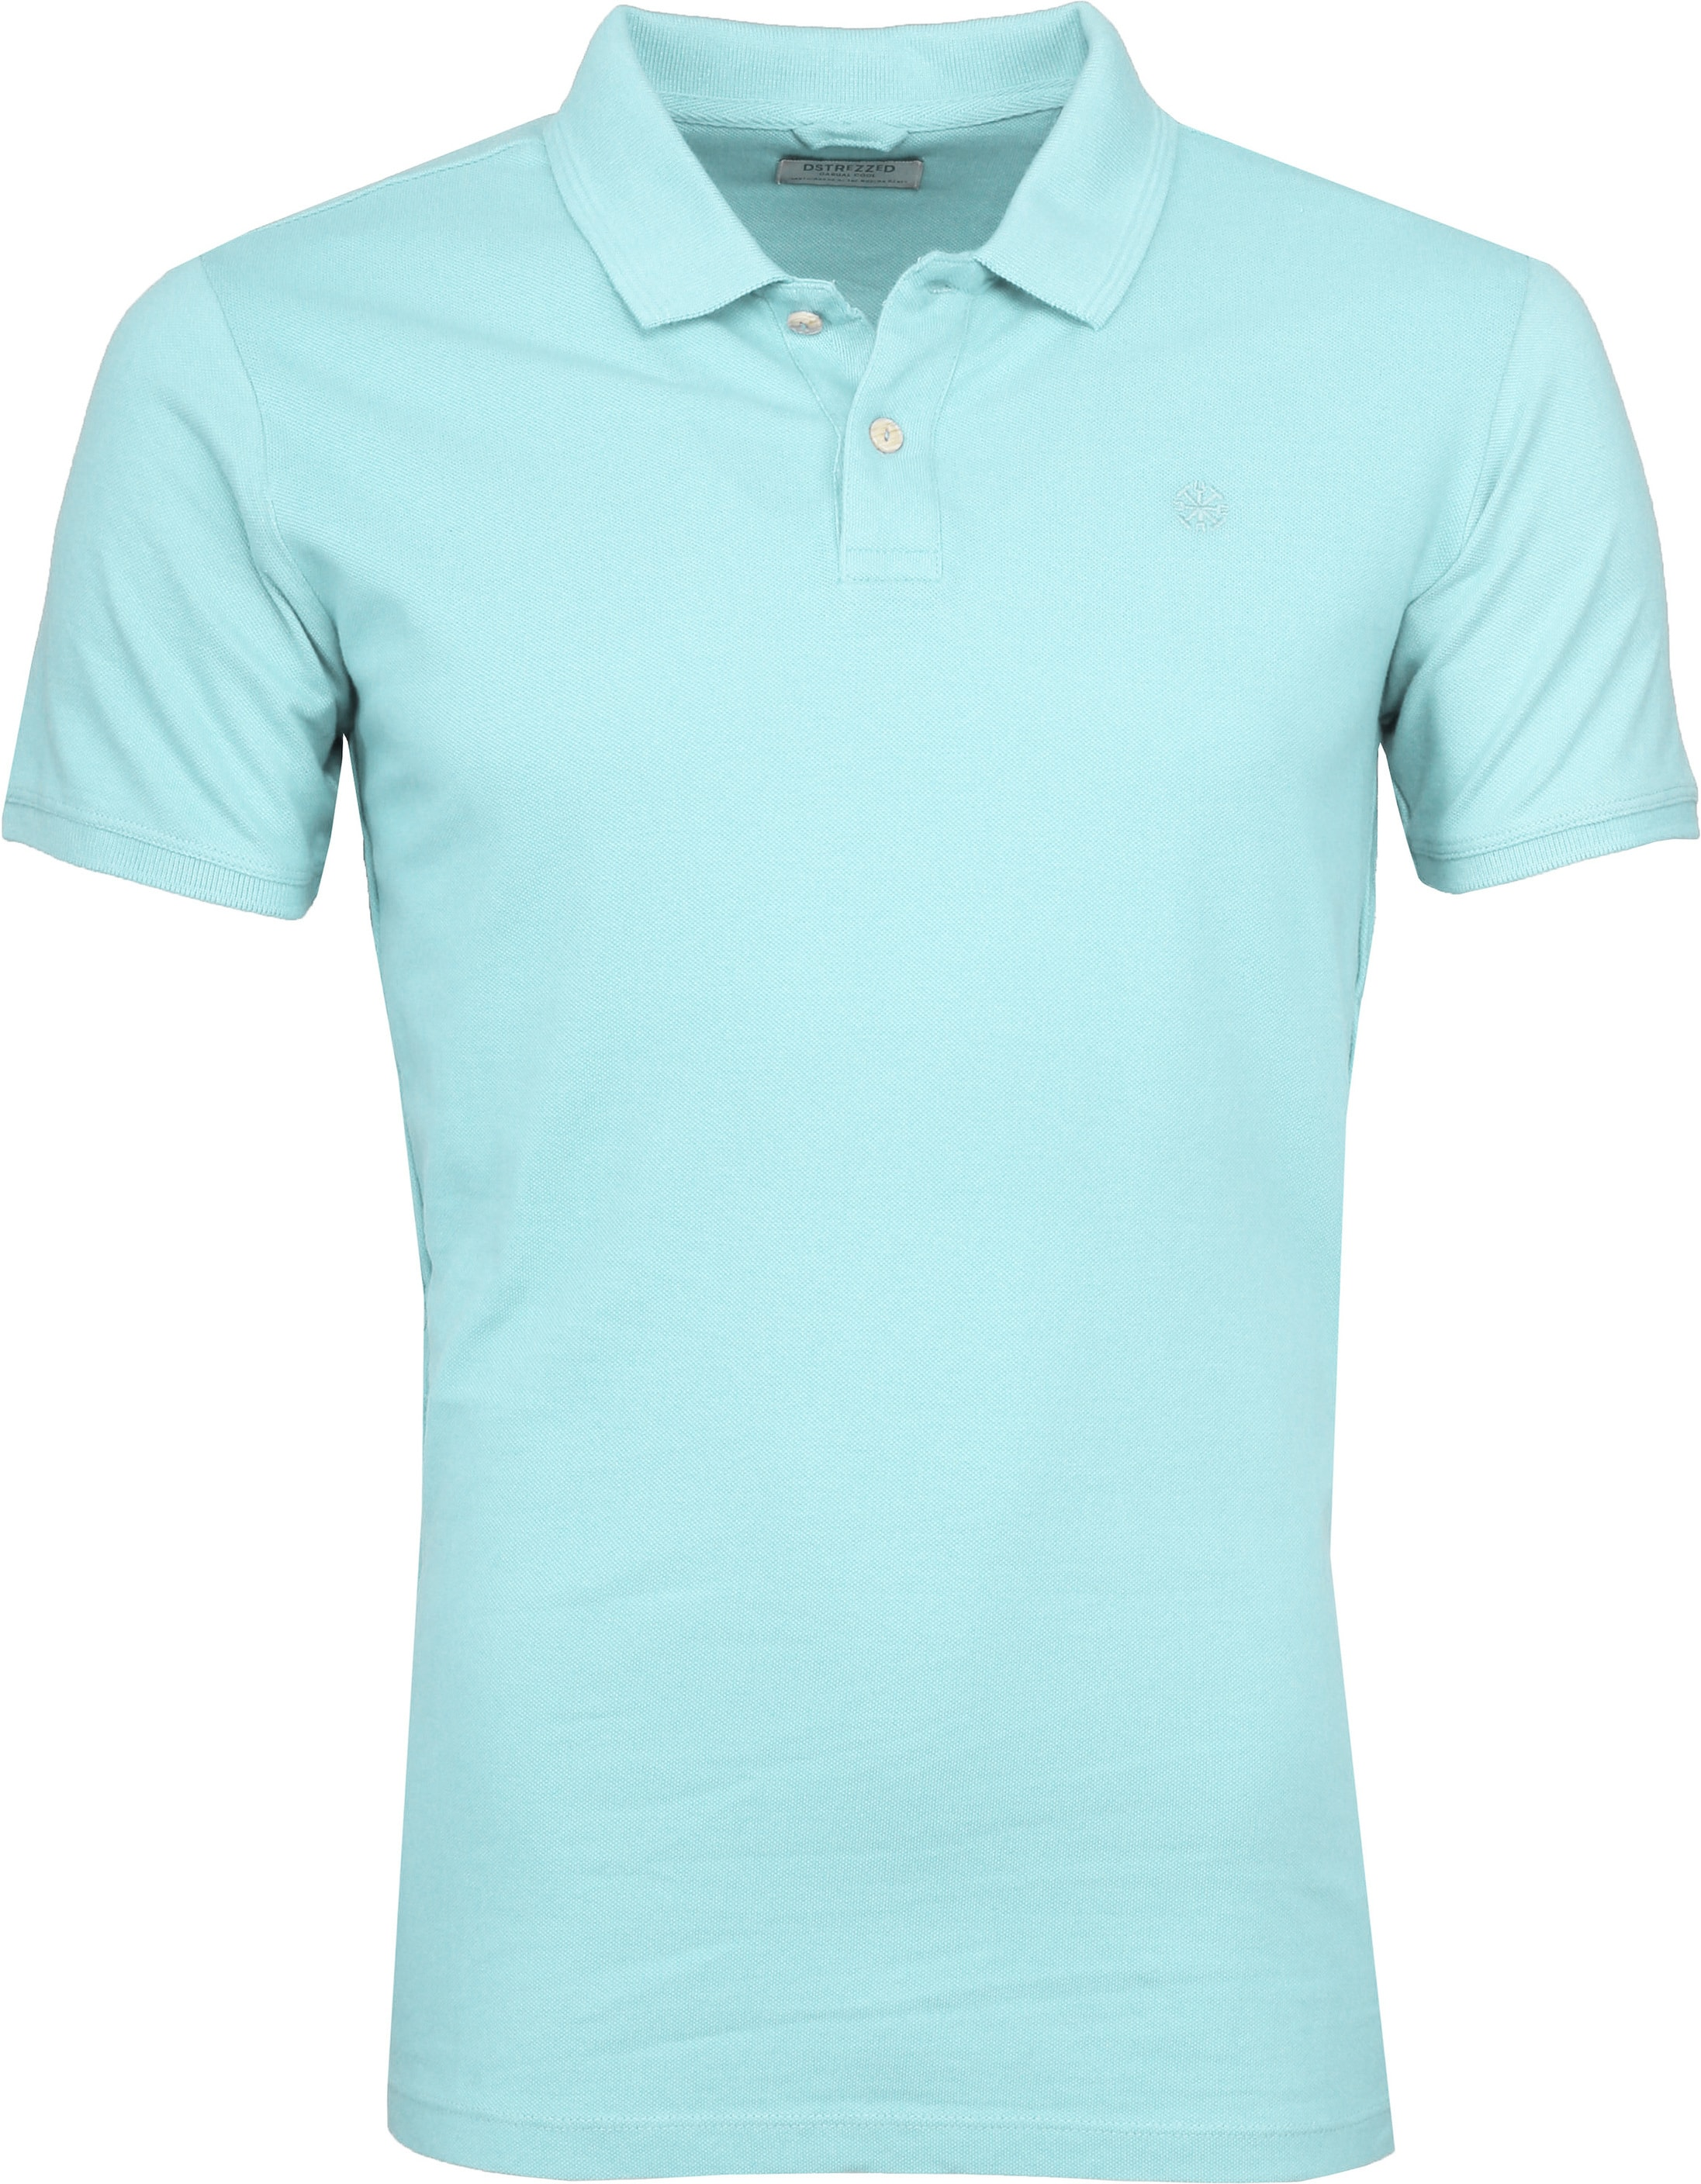 Dstrezzed Bowie Poloshirt Turquoise foto 0